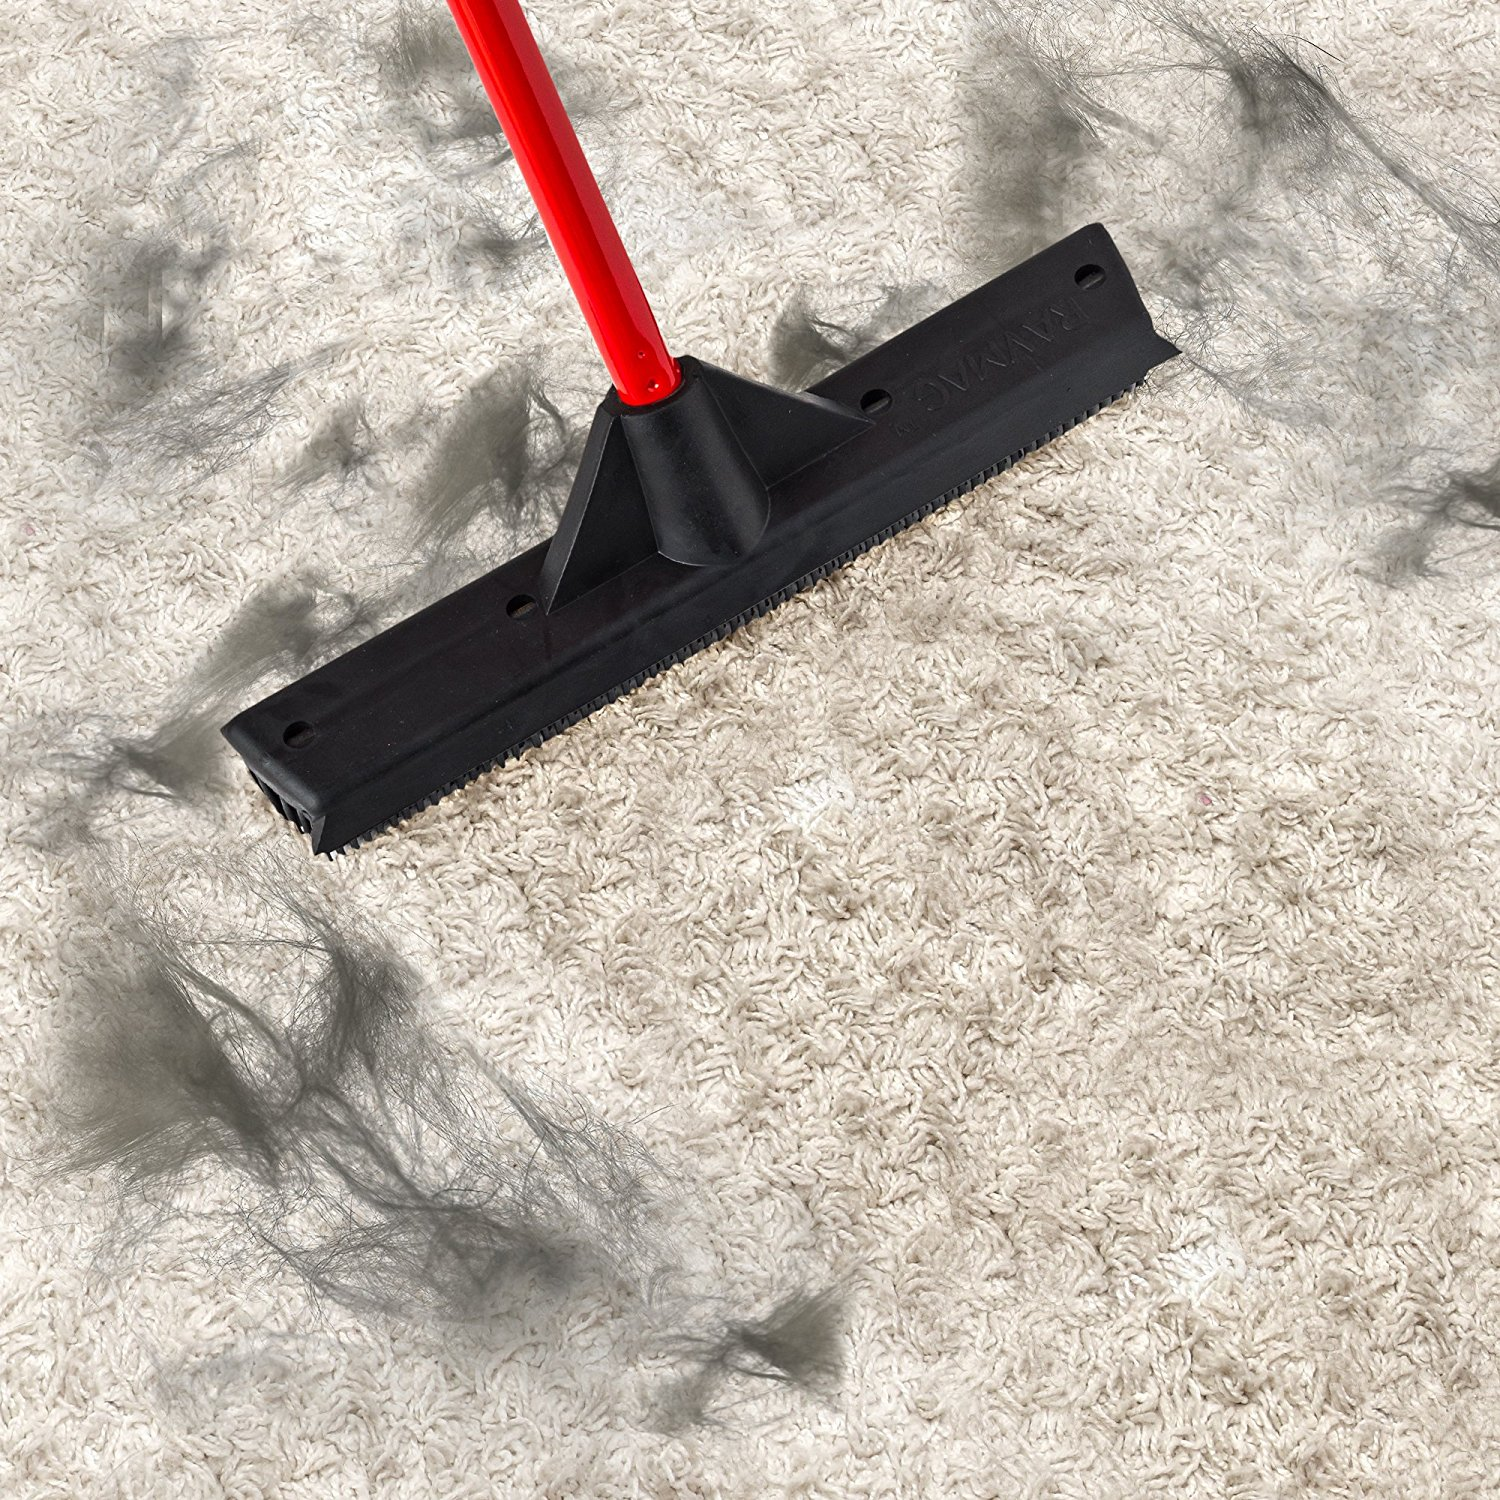 Rugs That Dog Hair Won T Stick To: Best Rug & Carpet Rakes For Your Home